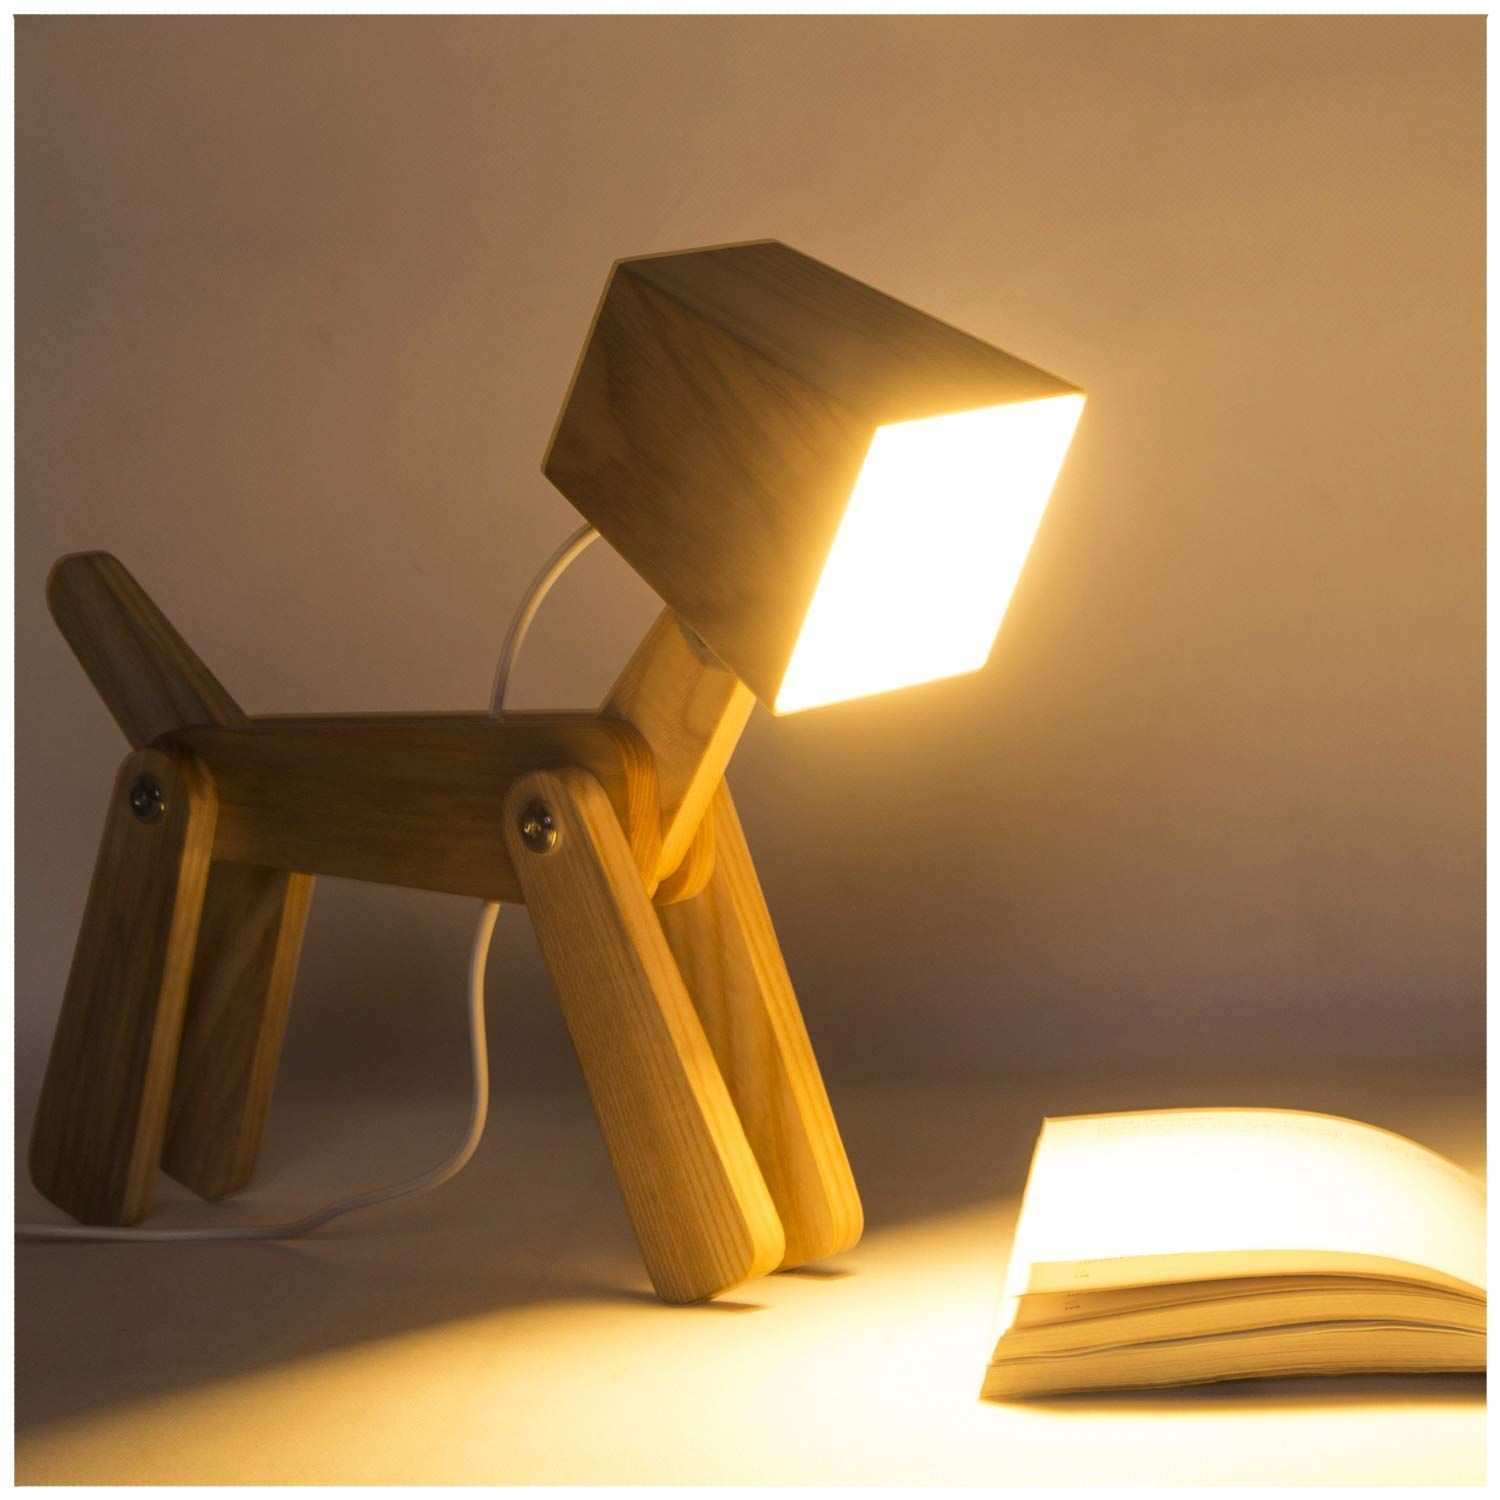 Hroome Modern Design Wood Desk Lamp Led Touch Dimmable Adjustable Animals Adjustable Animals Design Desk Dimmable Hroo In 2020 Dog Lamp Lamp Table Lamp Wood